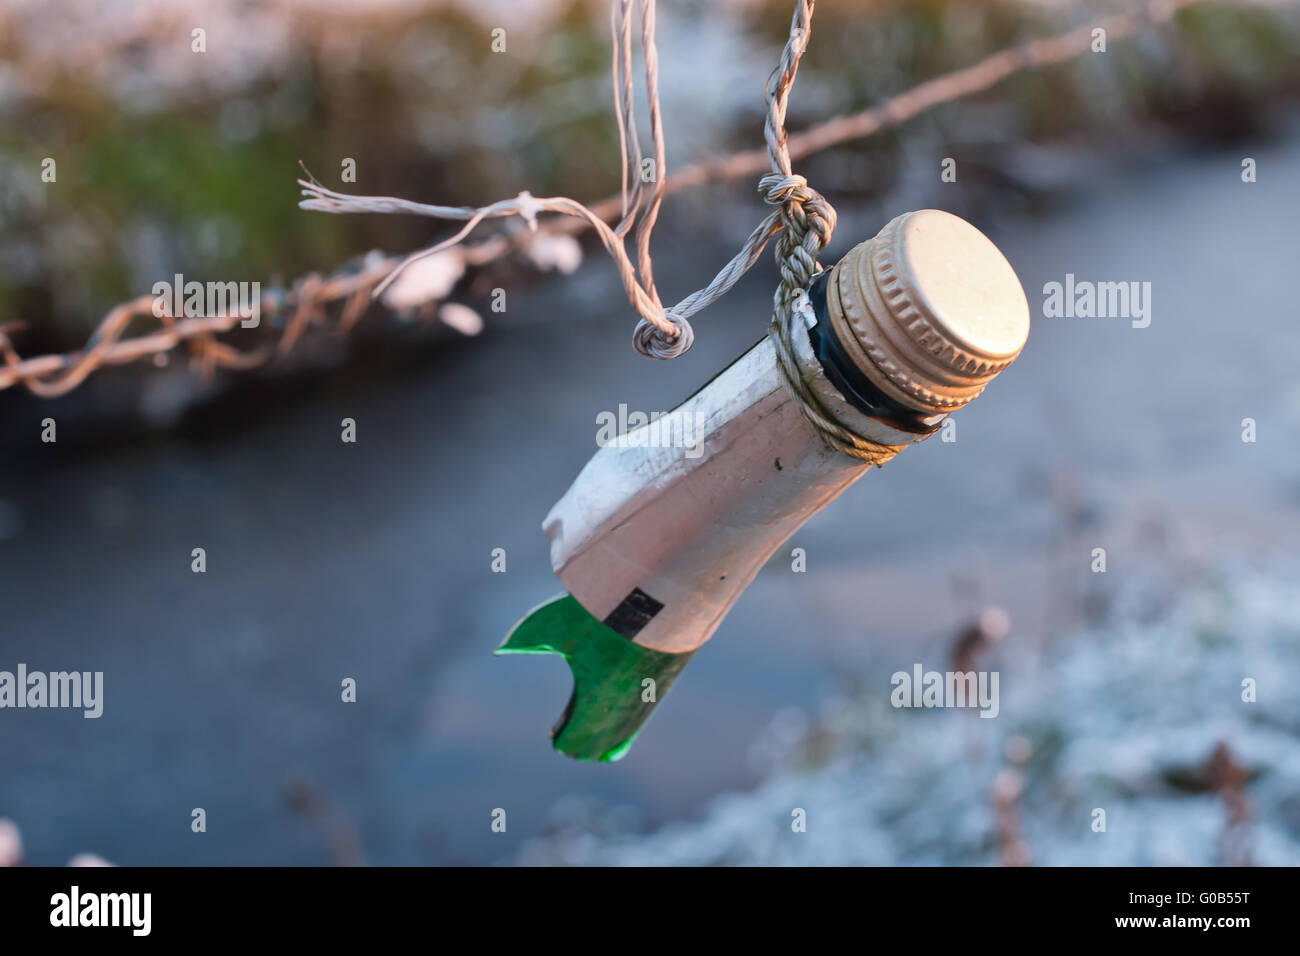 upper part of a broken bottle at a cattle-fence - Stock Image